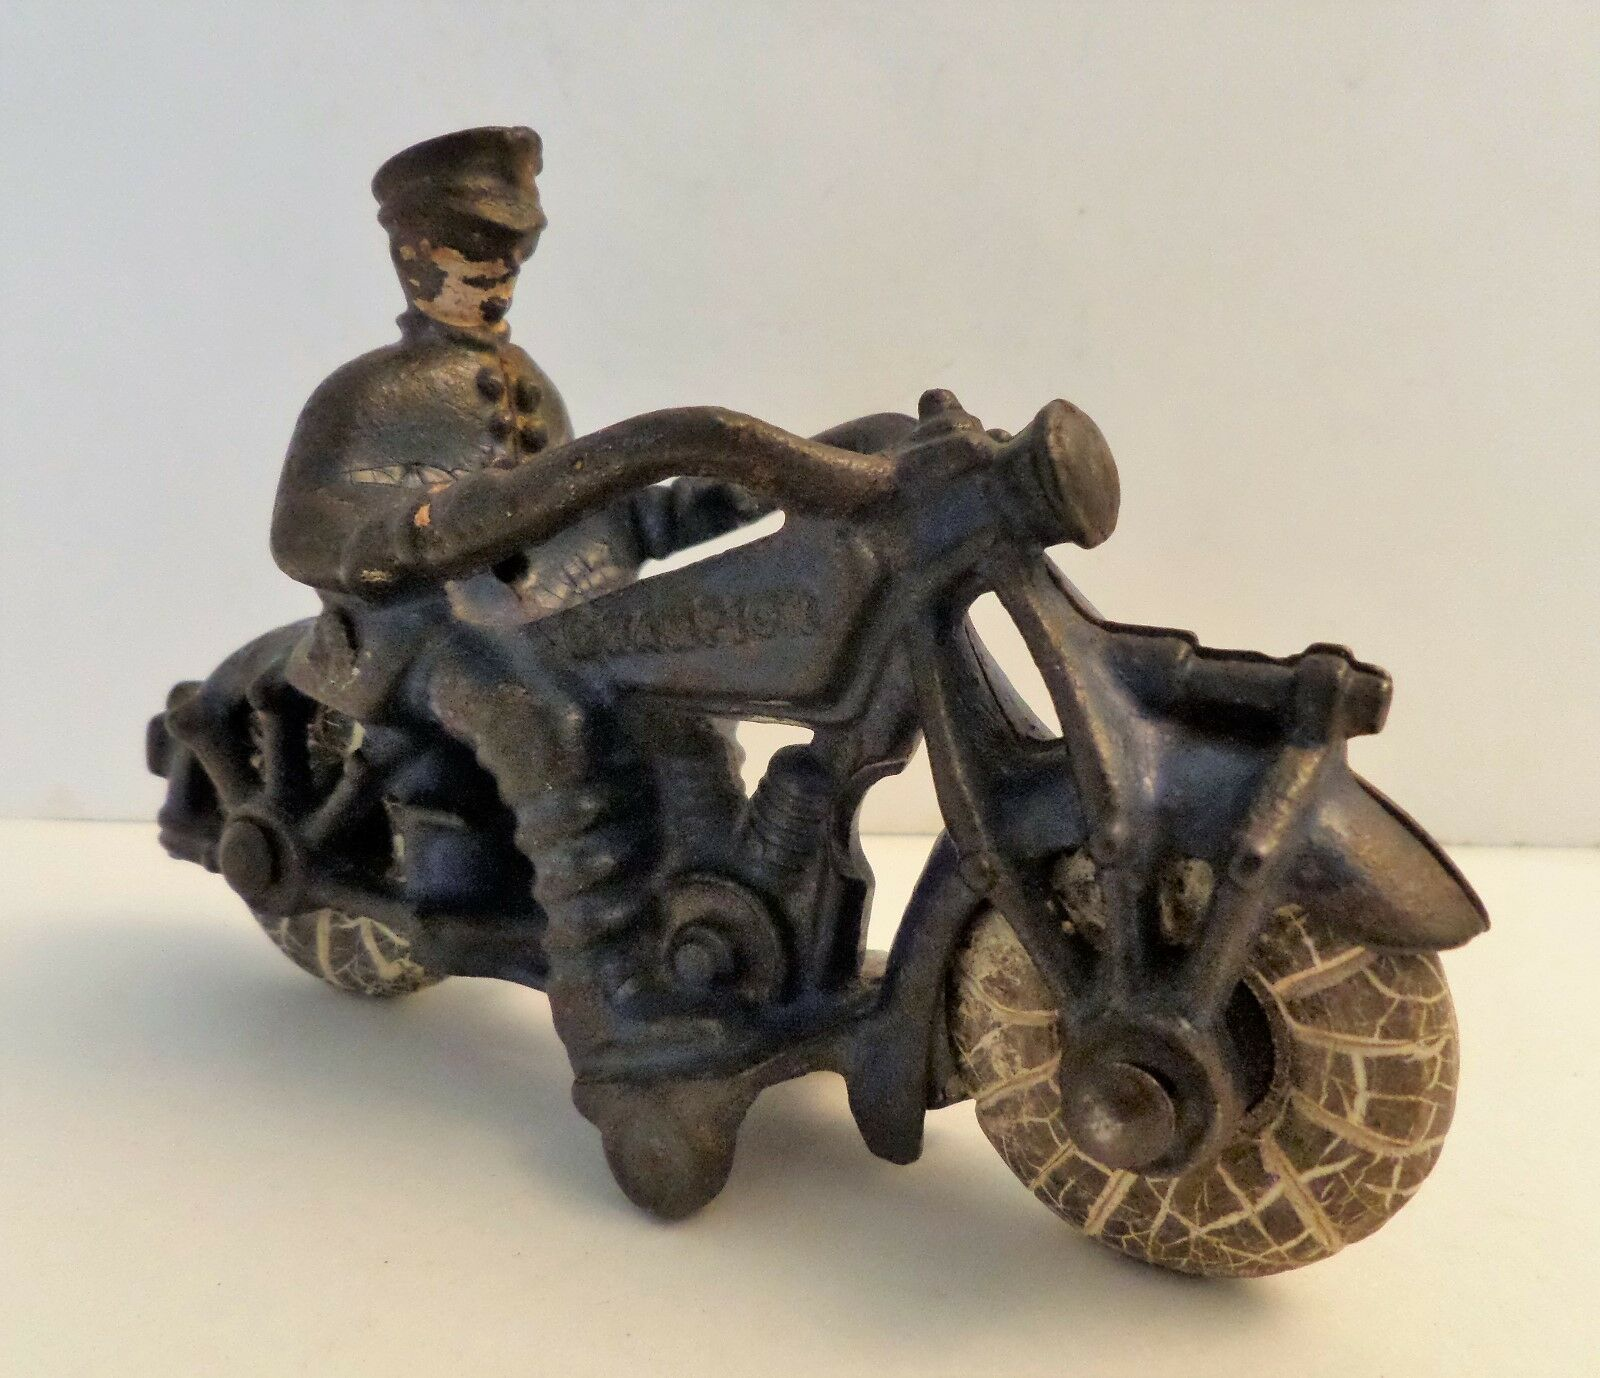 CHAMPION 1930's CAST IRON blueE MOTORCYCLE 5  TOY HUBLEY ARCADE